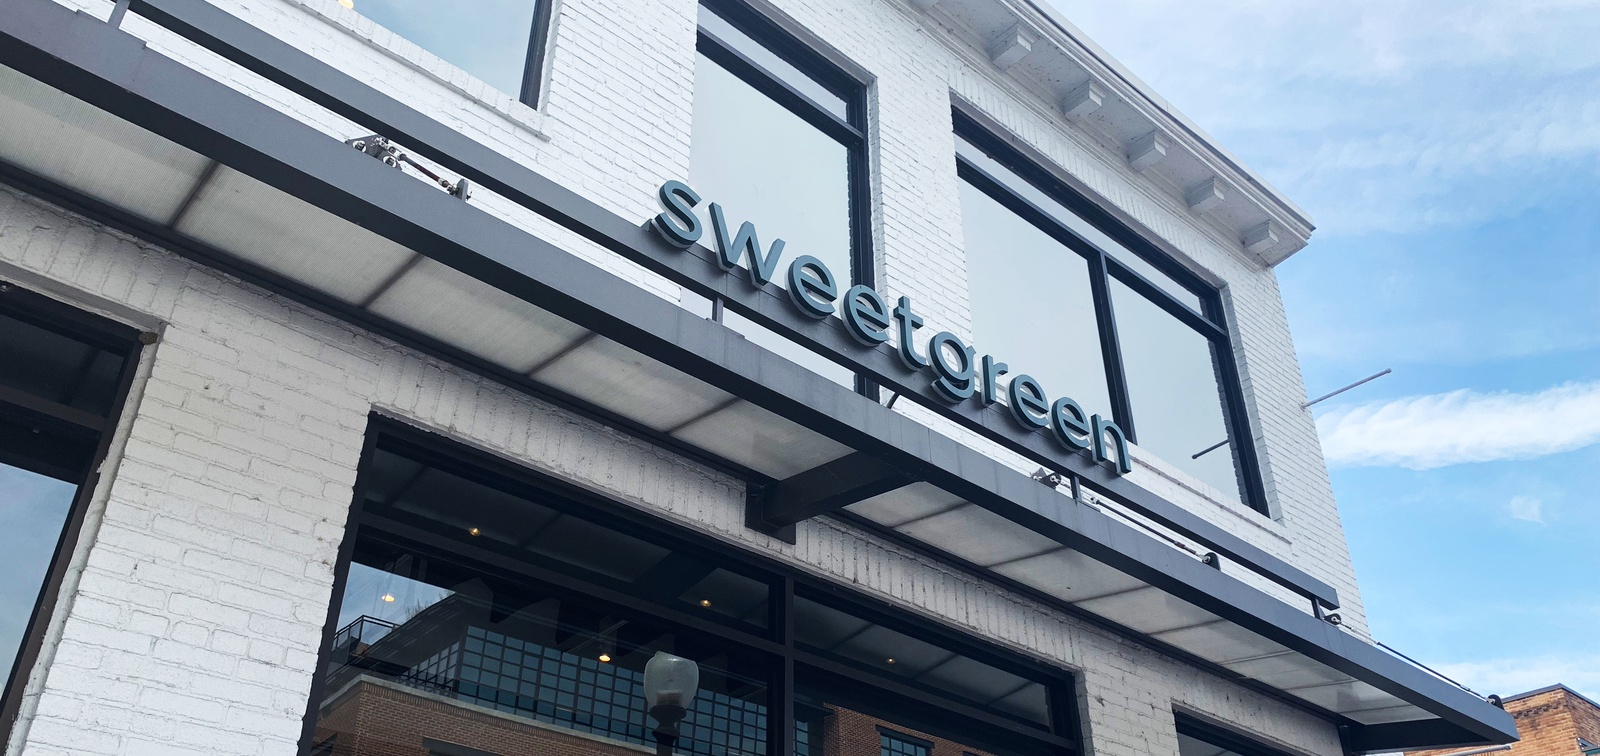 Sweetgreen preps in-house agency with new exec